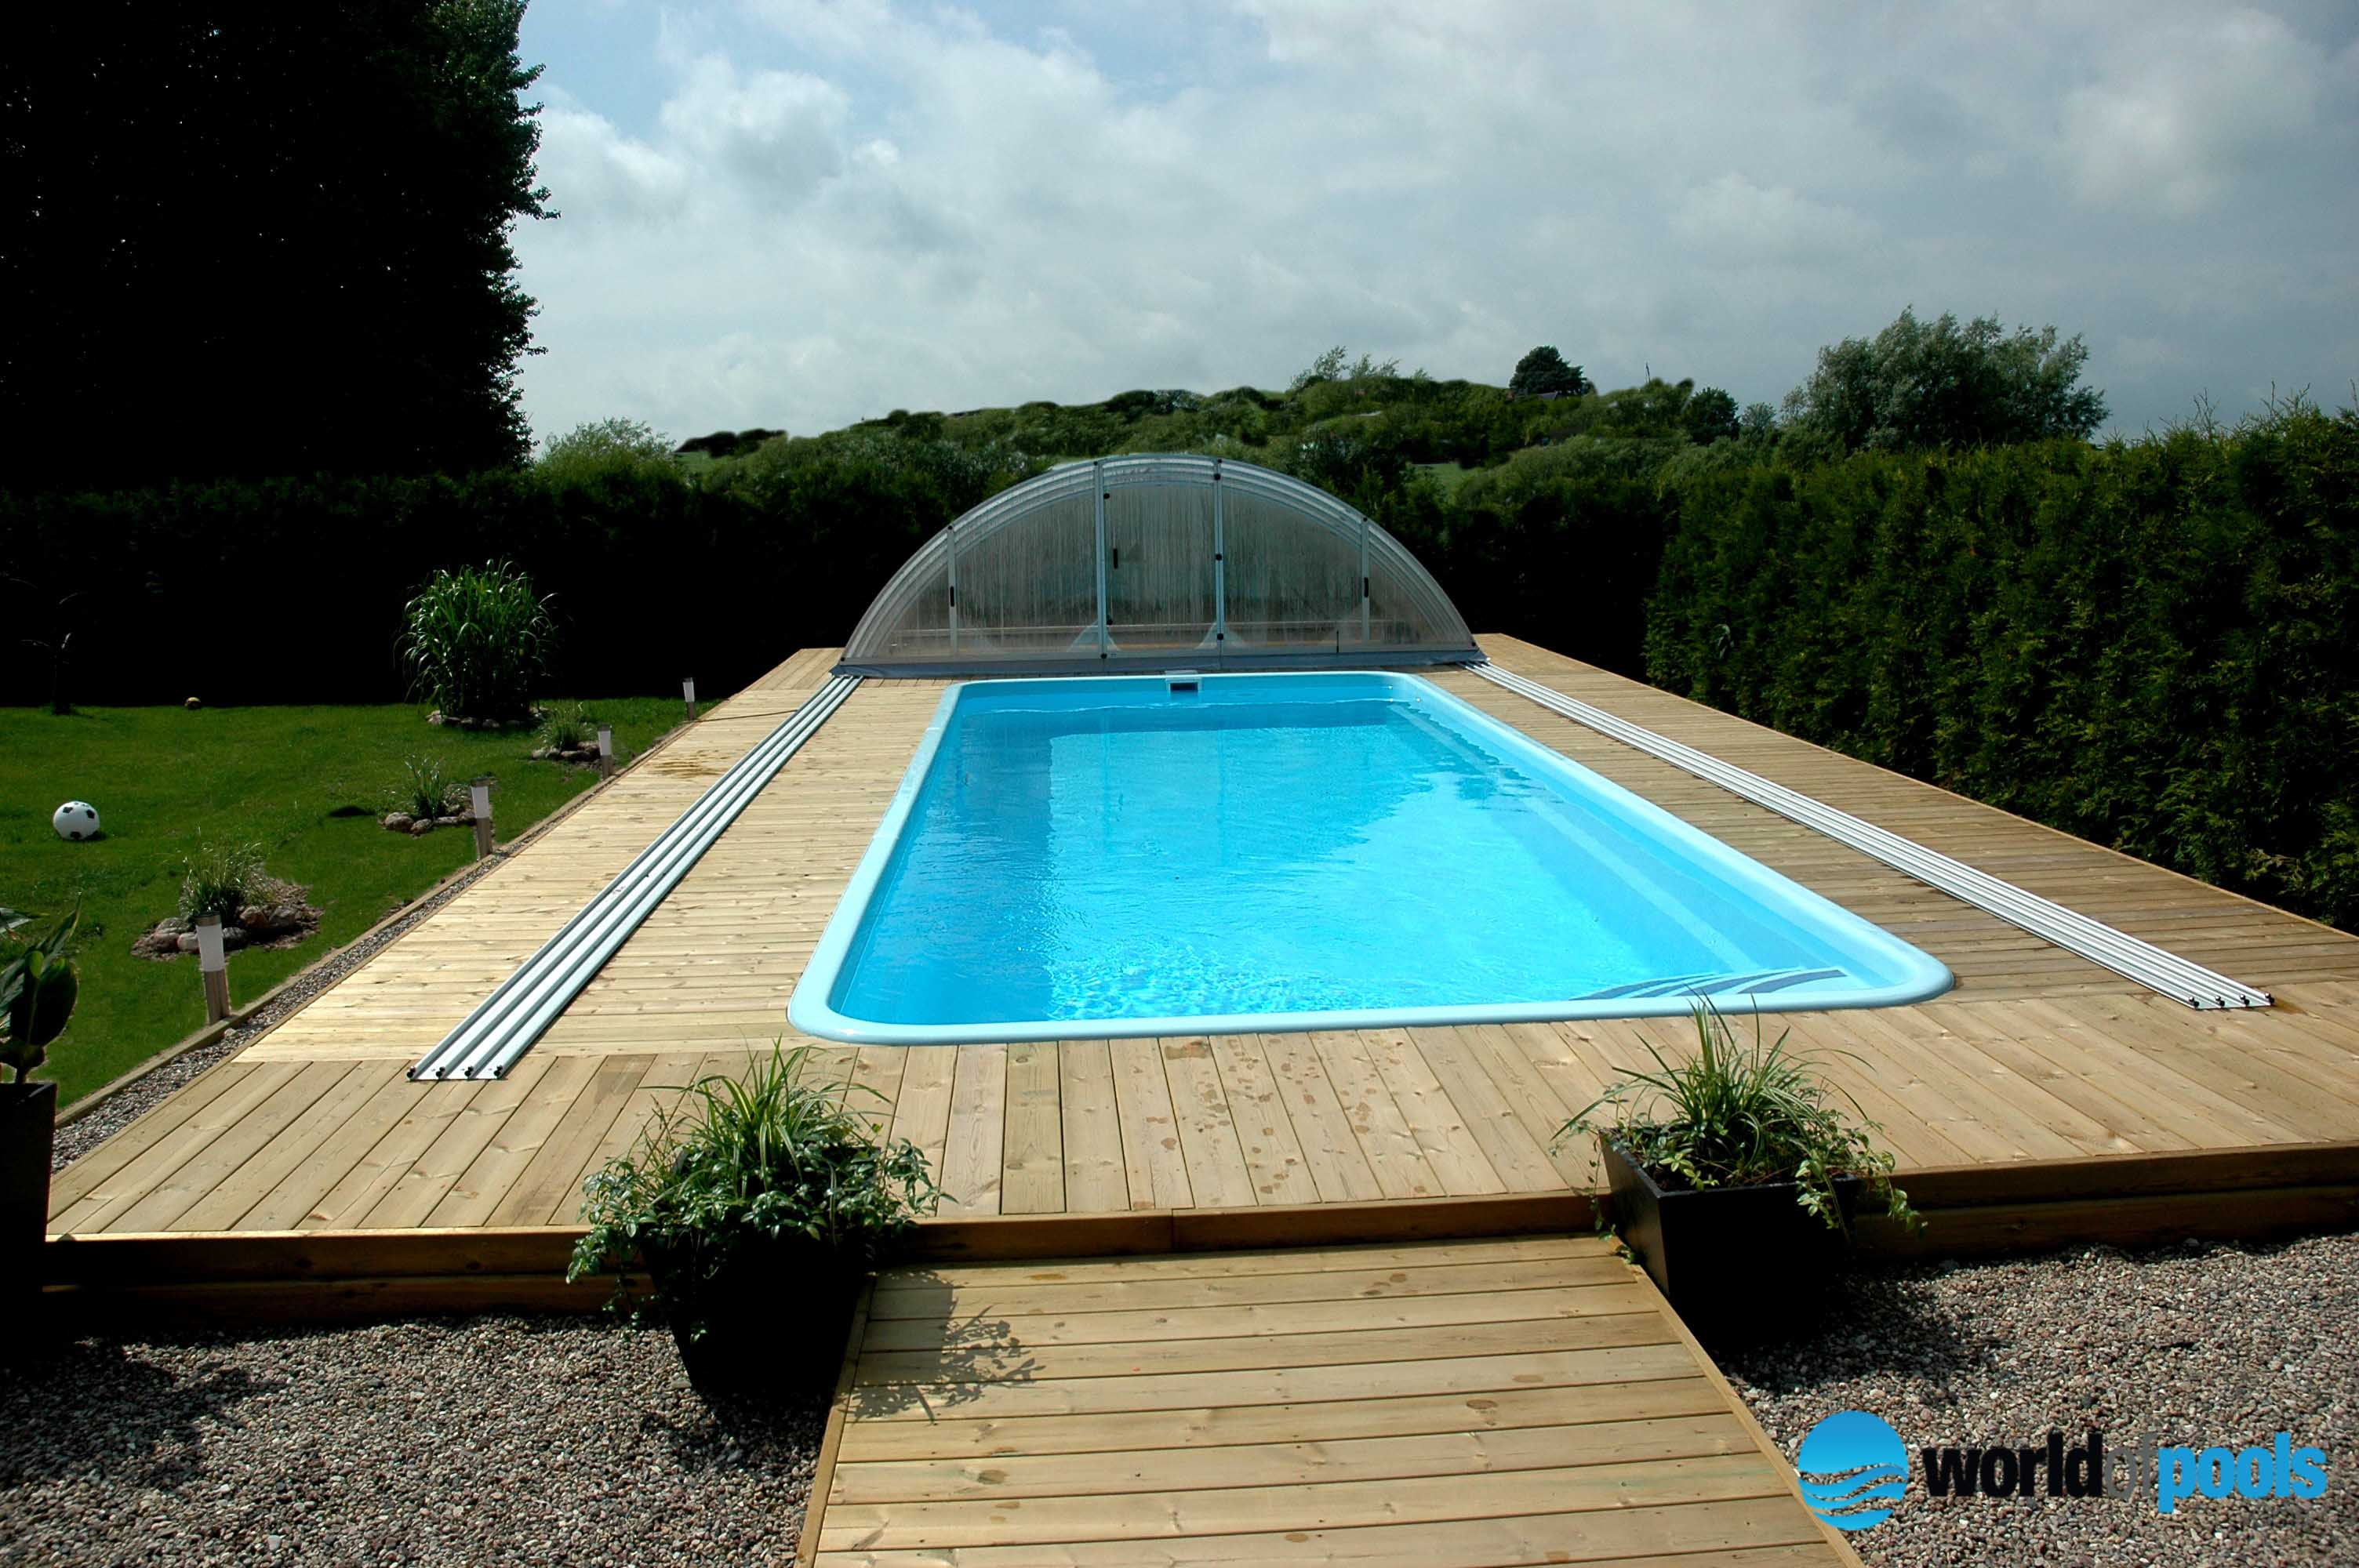 Angebot pools f r garten swimmingpools fertigschwimmbecken for Pool design polen